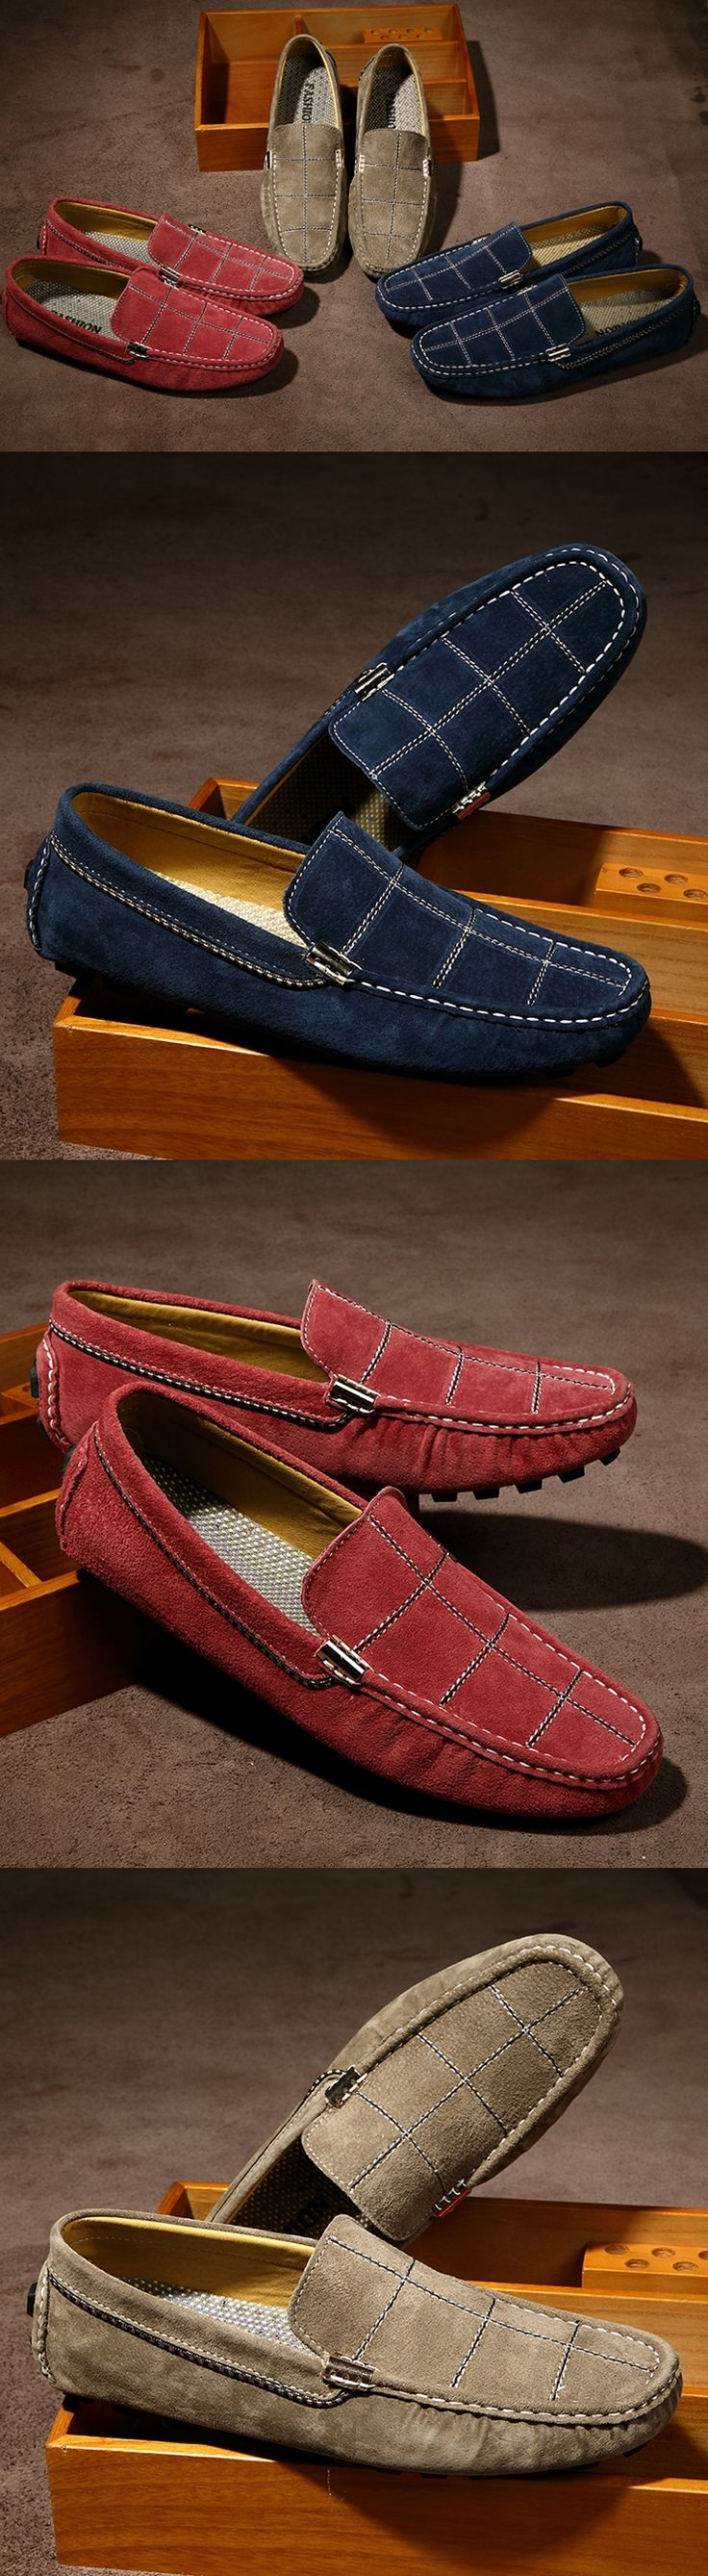 US $25 Luxury Men Suede Loafers Slip-on Gentlemen Moccasins Soft Flat Driving Loafers Boat Shoes Letters Red Blue Khaki